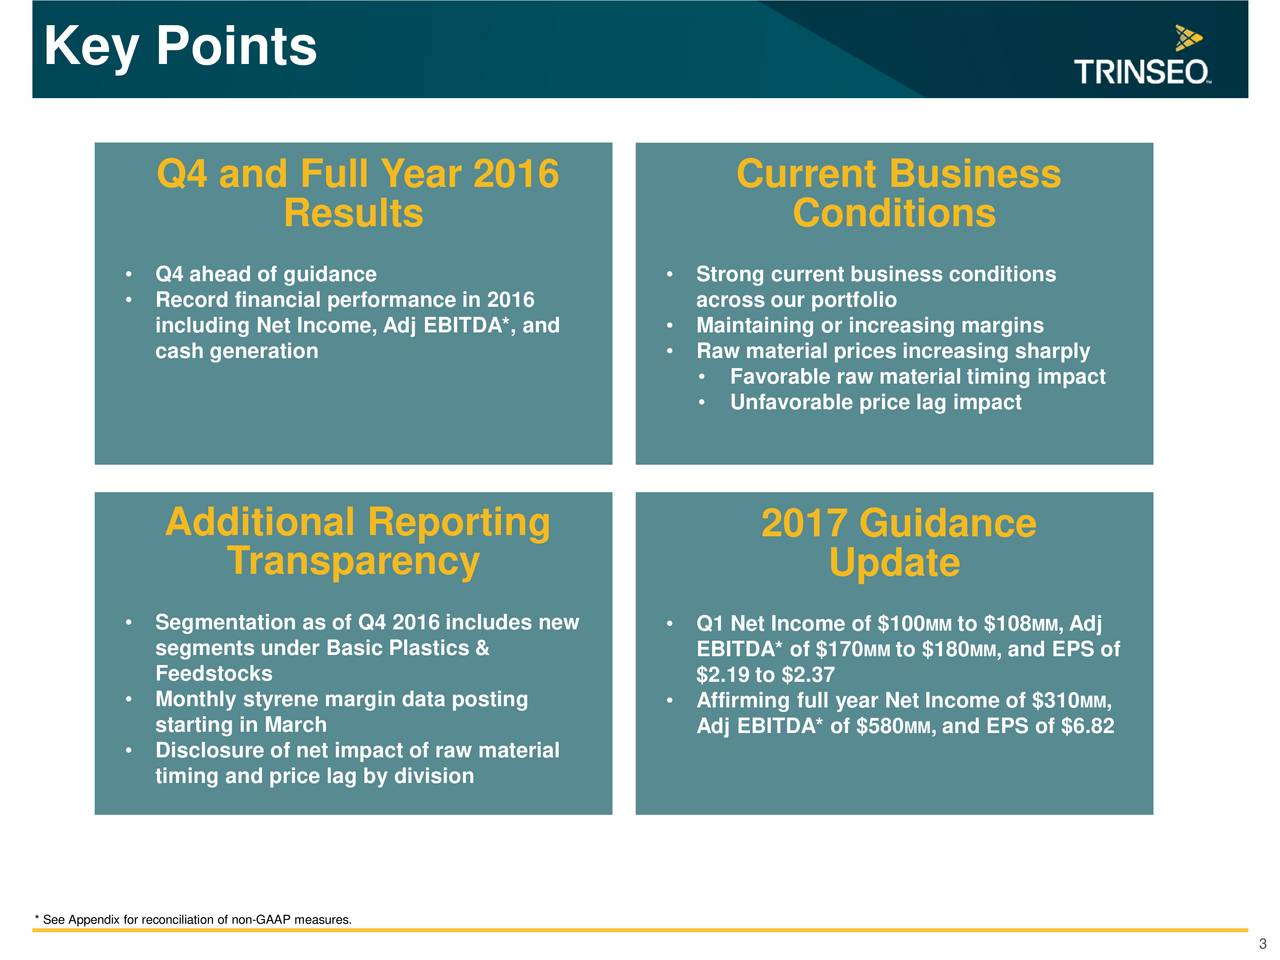 Q4 and Full Year 2016 Current Business Results Conditions Q4 ahead of guidance  Strong current business conditions Record financial performance in 2016 across our portfolio including Net Income, Adj EBITDA*, and  Maintaining or increasing margins cash generation  Raw material prices increasing sharply Favorable raw material timing impact Unfavorable price lag impact Additional Reporting 2017 Guidance Transparency Update Segmentation as of Q4 2016 includes new  Q1 Net Income of $100MM to $108MM, Adj segments under Basic Plastics & EBITDA* of $170 MMto $180MM, and EPS of Feedstocks $2.19 to $2.37 Monthly styrene margin data posting  Affirming full year Net Income of $MM, starting in March Adj EBITDA* of $580MM , and EPS of $6.82 Disclosure of net impact of raw material timing and price lag by division * See Appendix for reconciliation of non-GAAP measures. 3